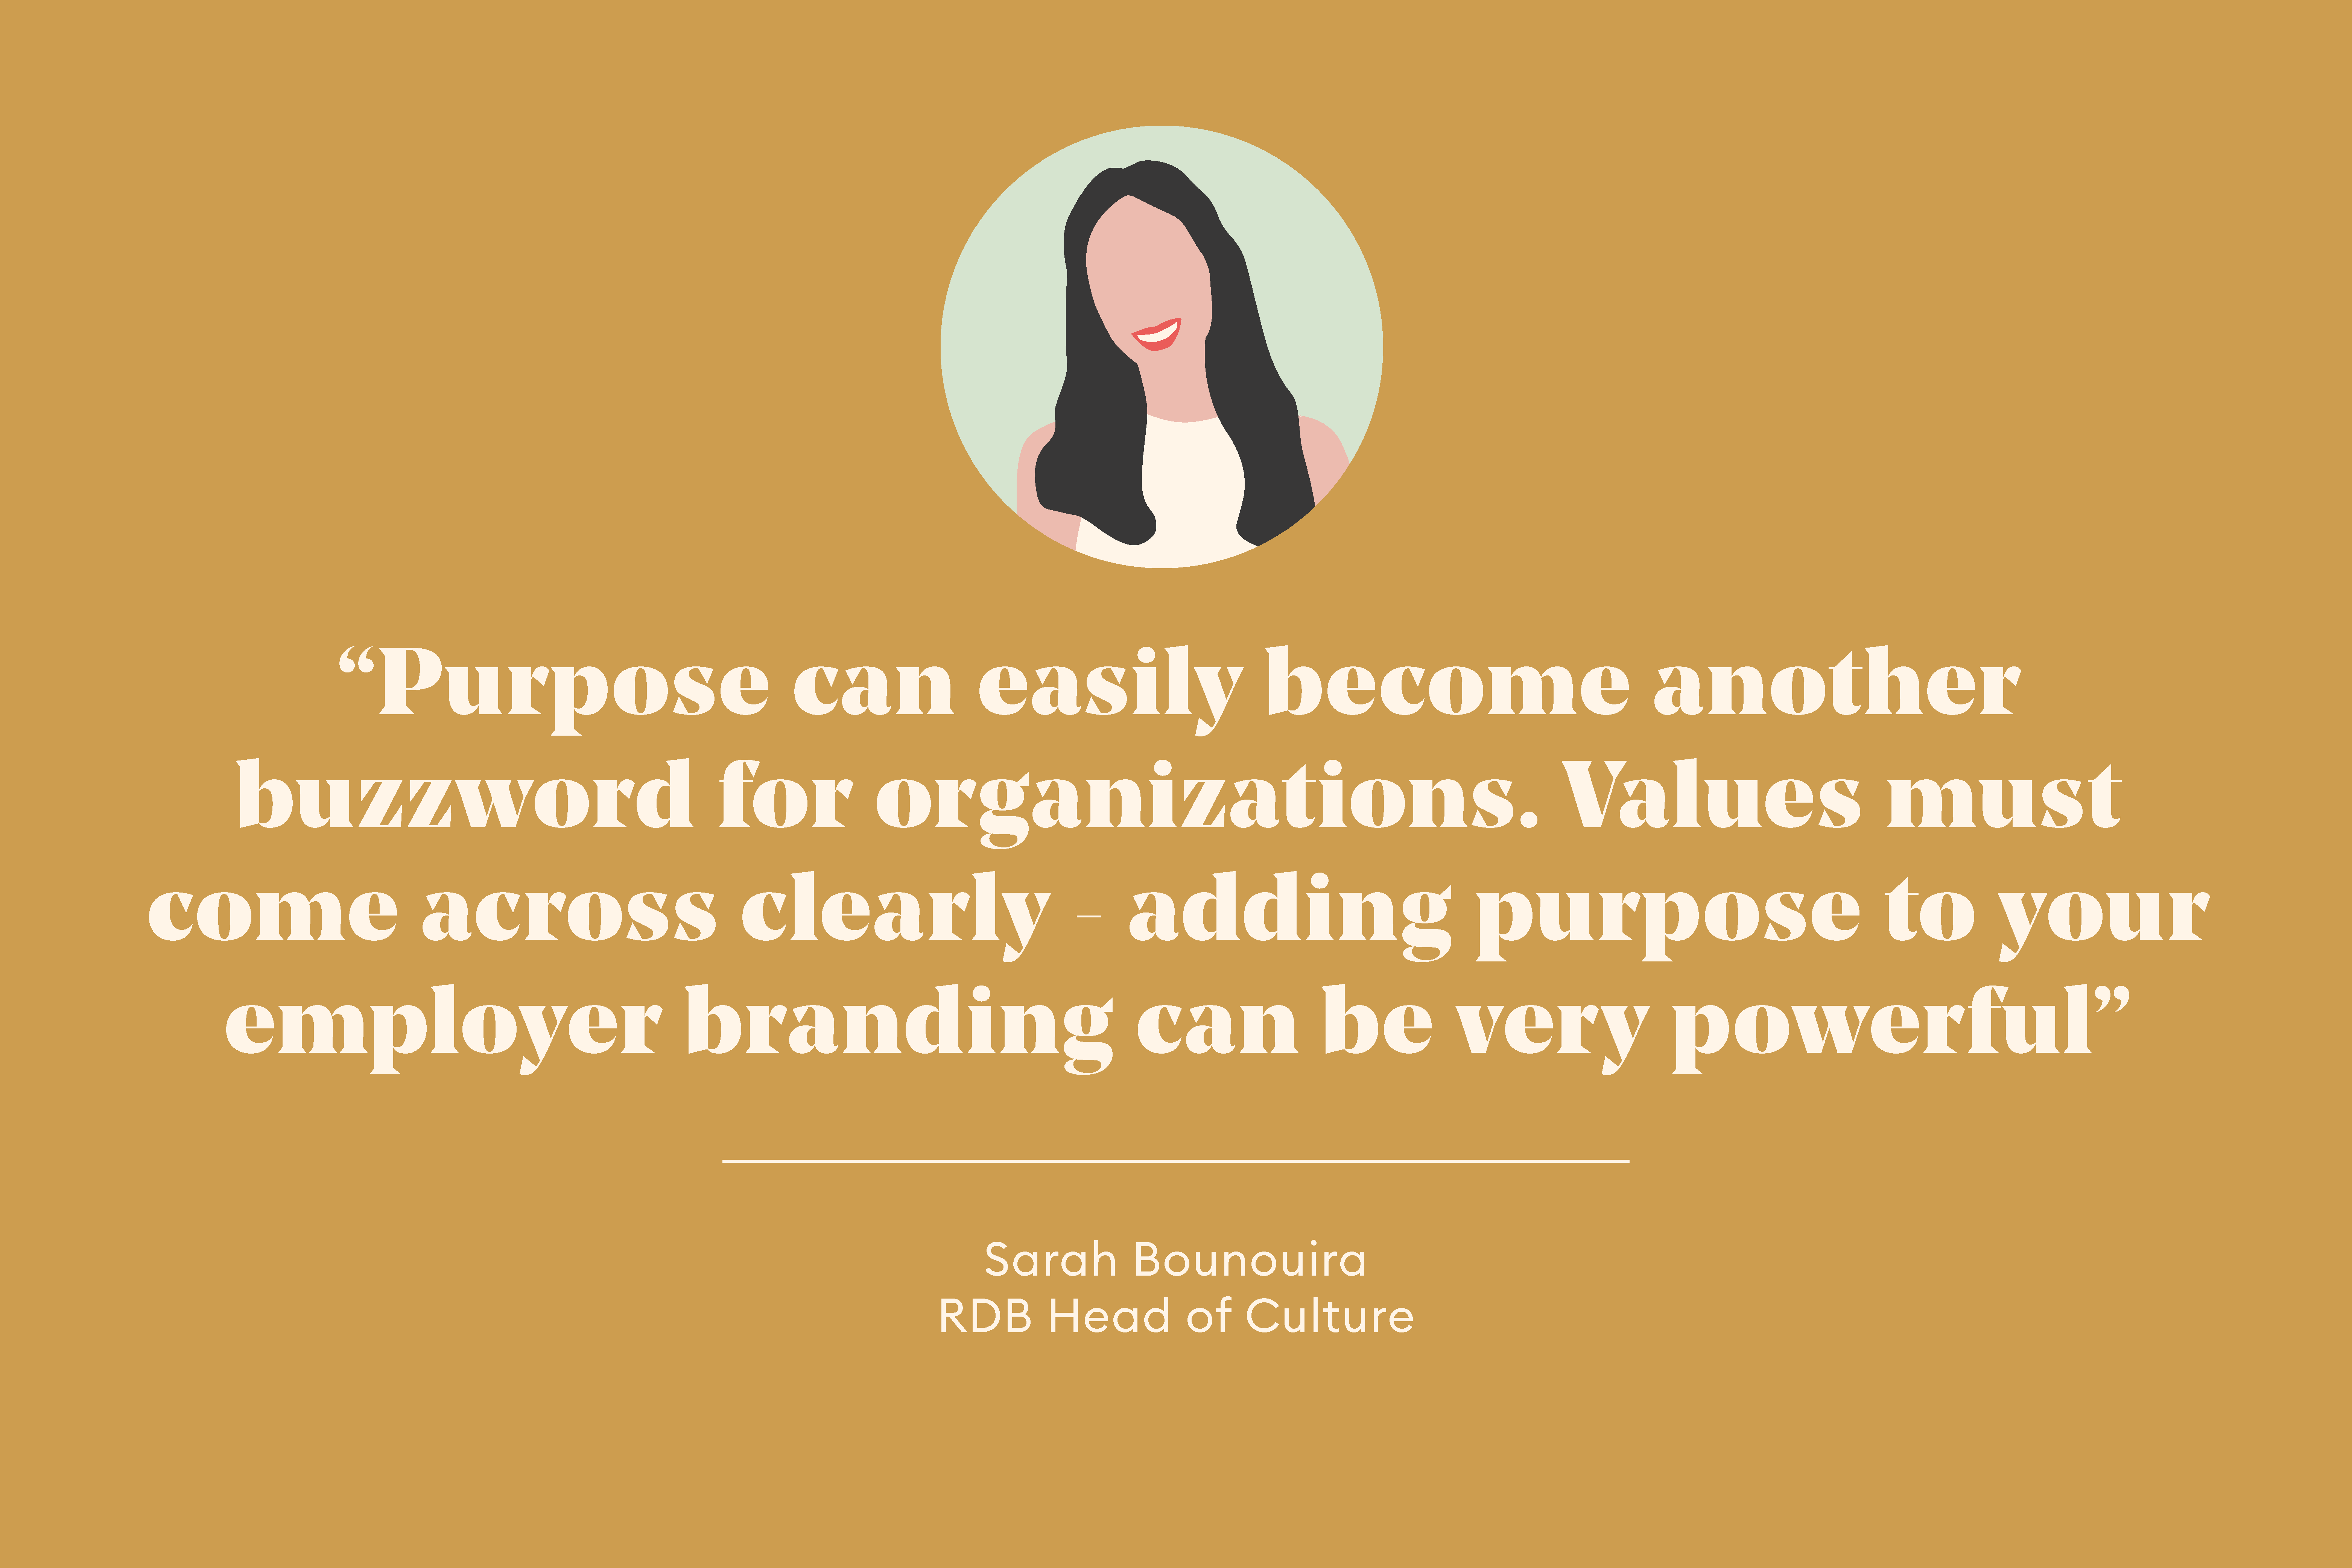 RDB Employer Branding Tips